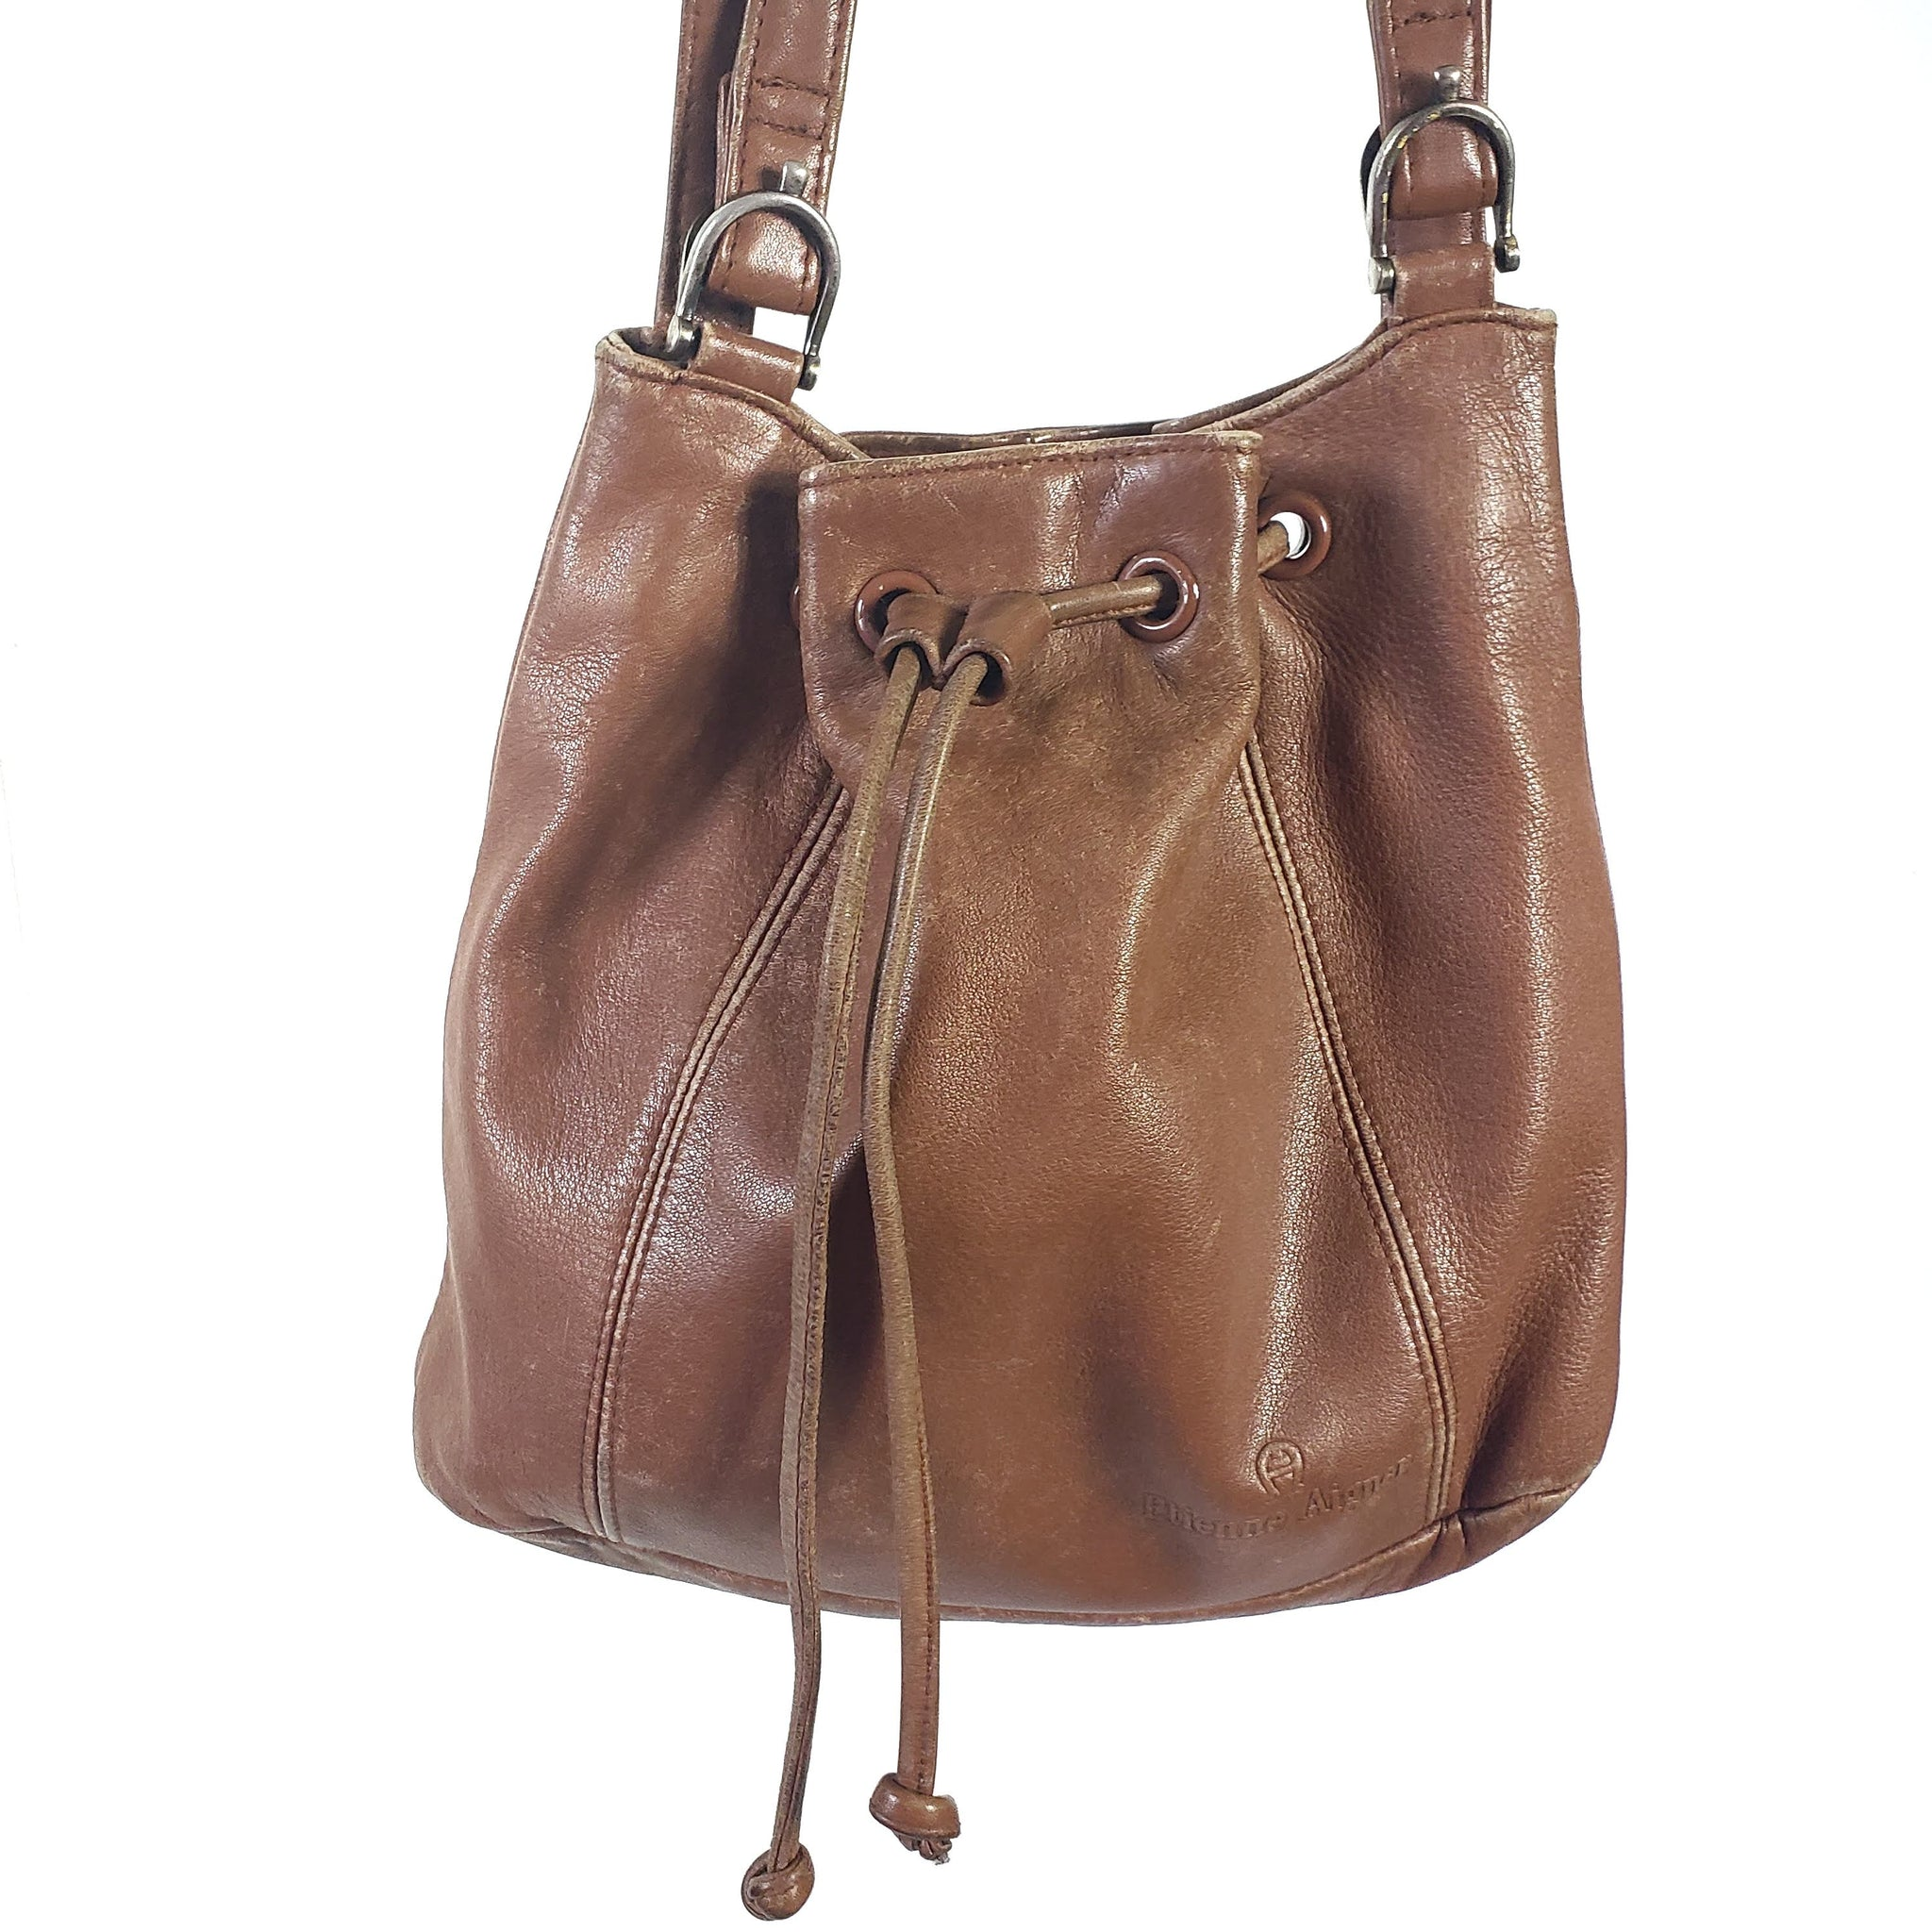 Vintage Etienne Aigner Leather Drawstring Bucket Bag